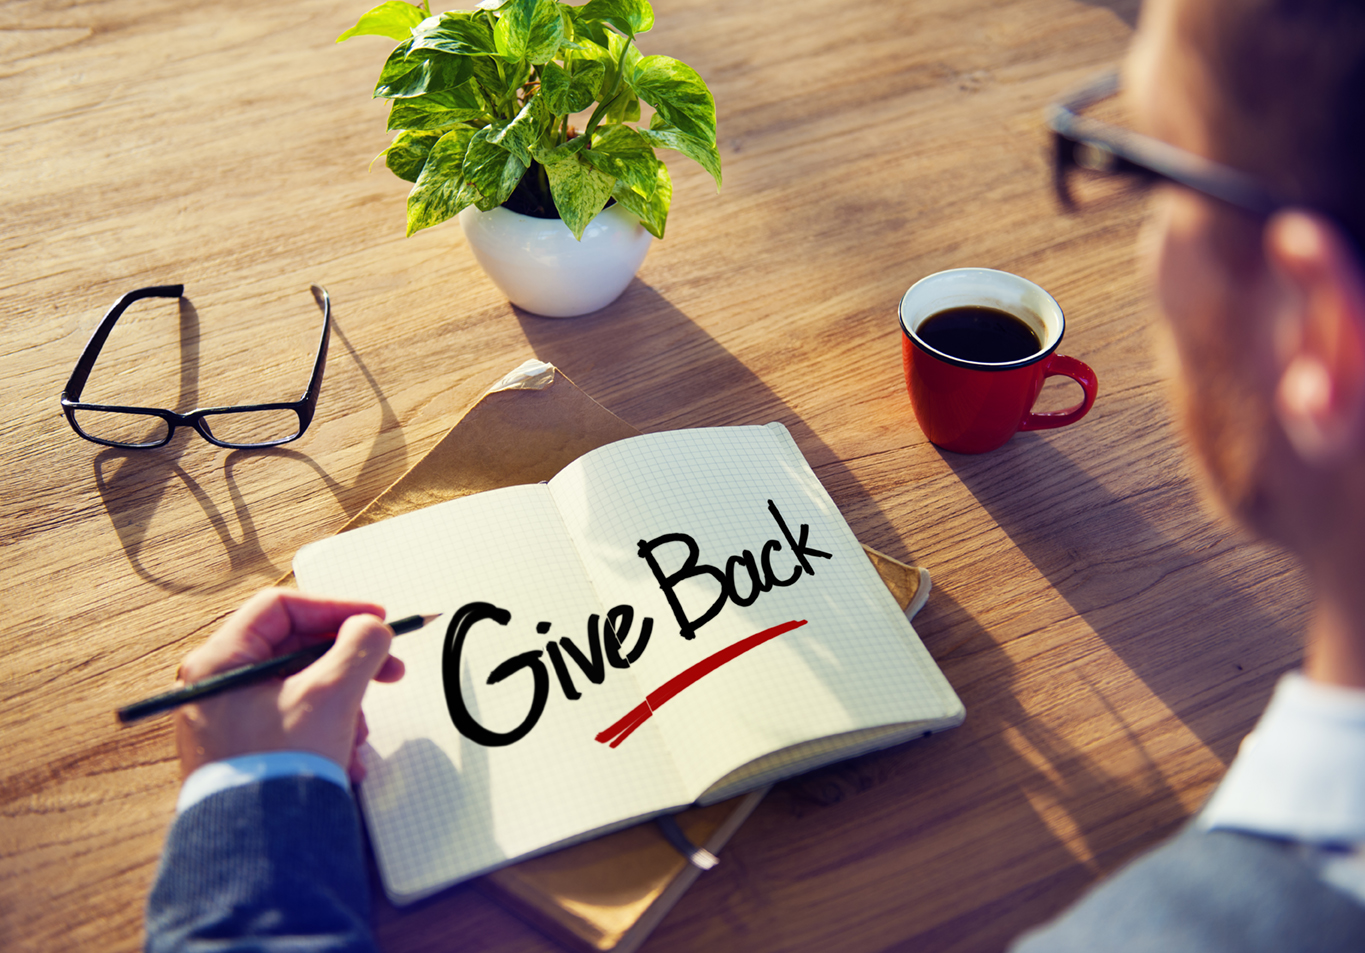 orlando-businesses-giving-back